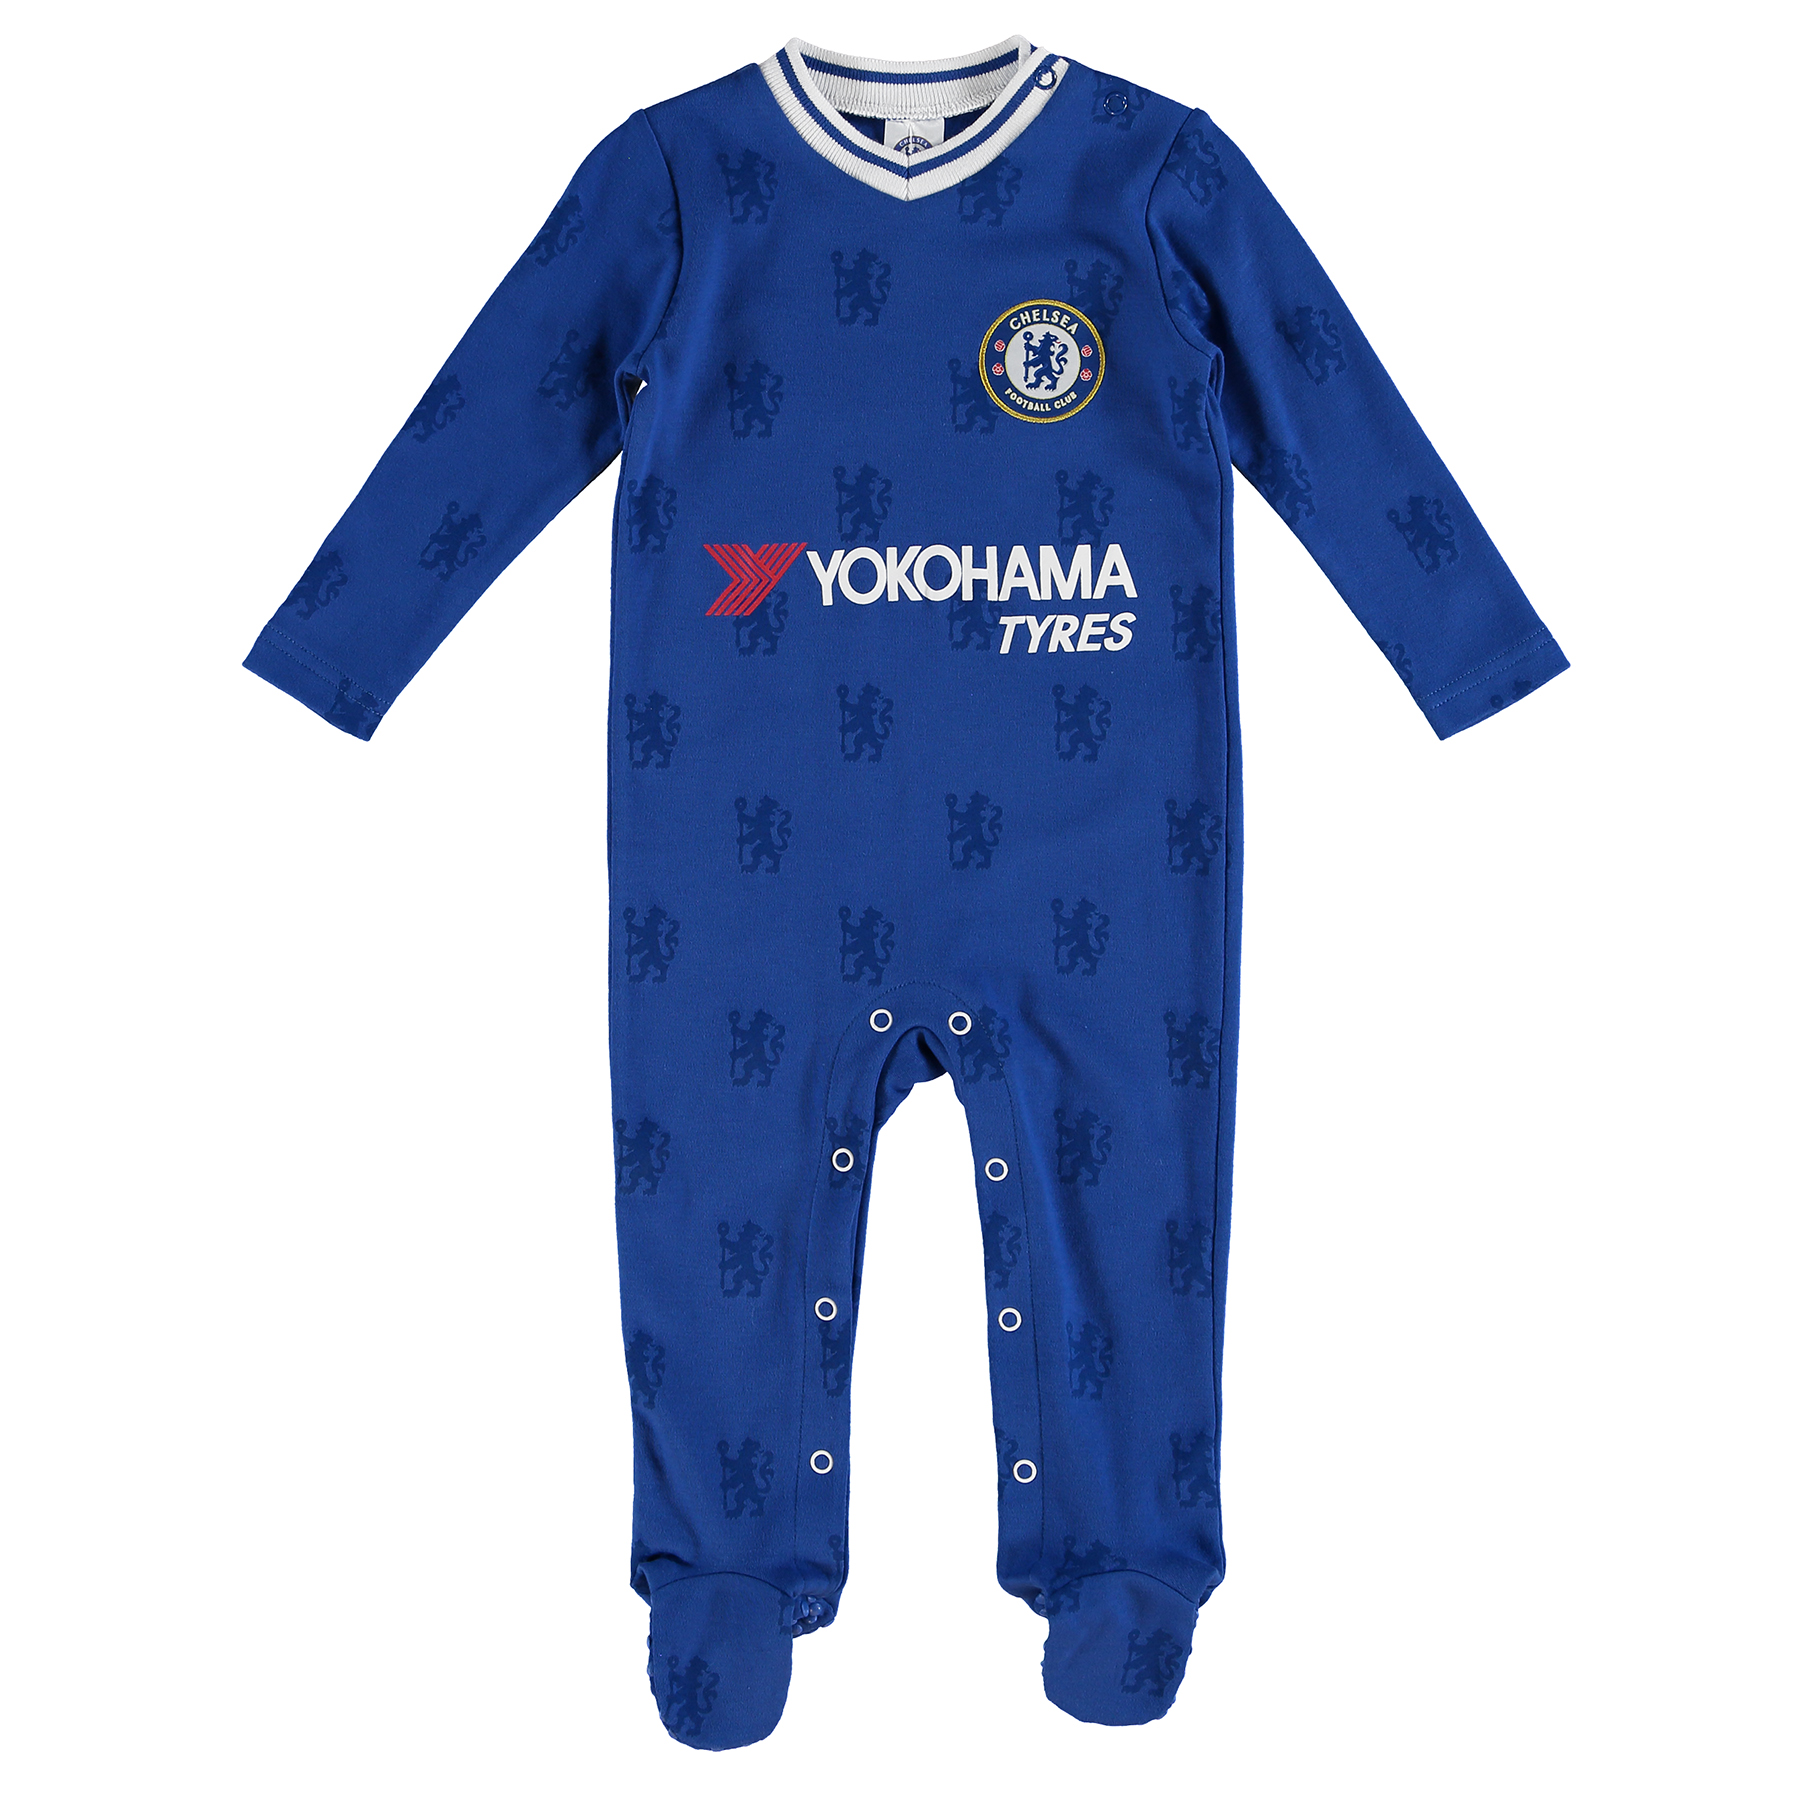 Chelsea Kit Sleepsuit - Royal - Baby   Your baby can be a blue from birth with this Chelsea kit sleepsuit which features a woven club crest badge for pride.   Built with popper fastenings, this 100% cotton sleepsuit is comfortable and practical so you can dress your little one with pride over and over!   Details: Woven club crest badge printed official sponsor contrast neckline popper fastenings all over printed lion logo 100% Cotton